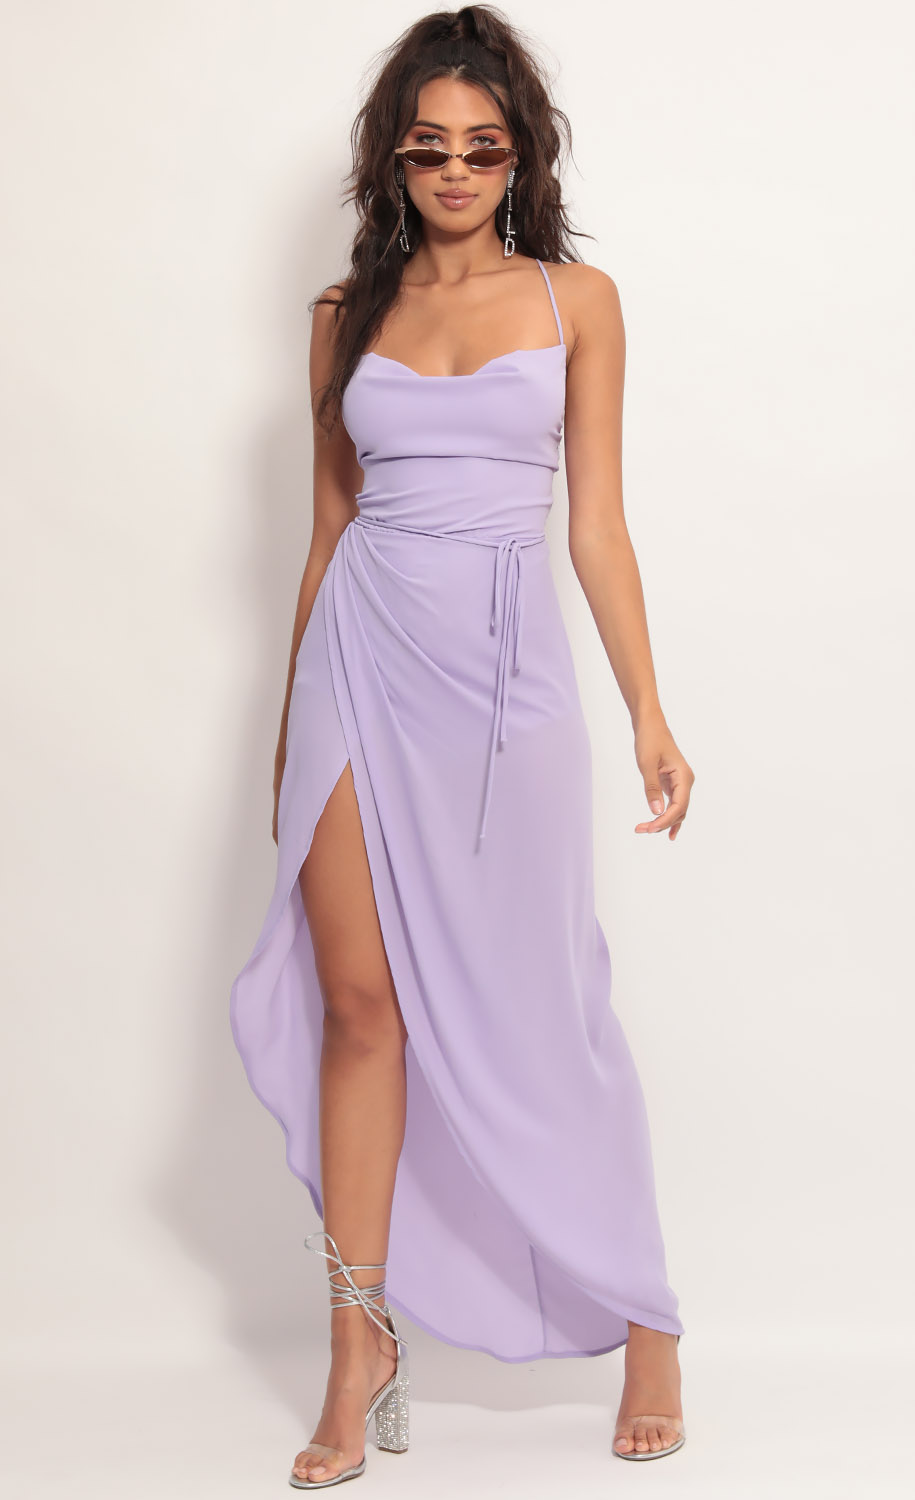 Chiffon Luxe Maxi Dress in Lavender